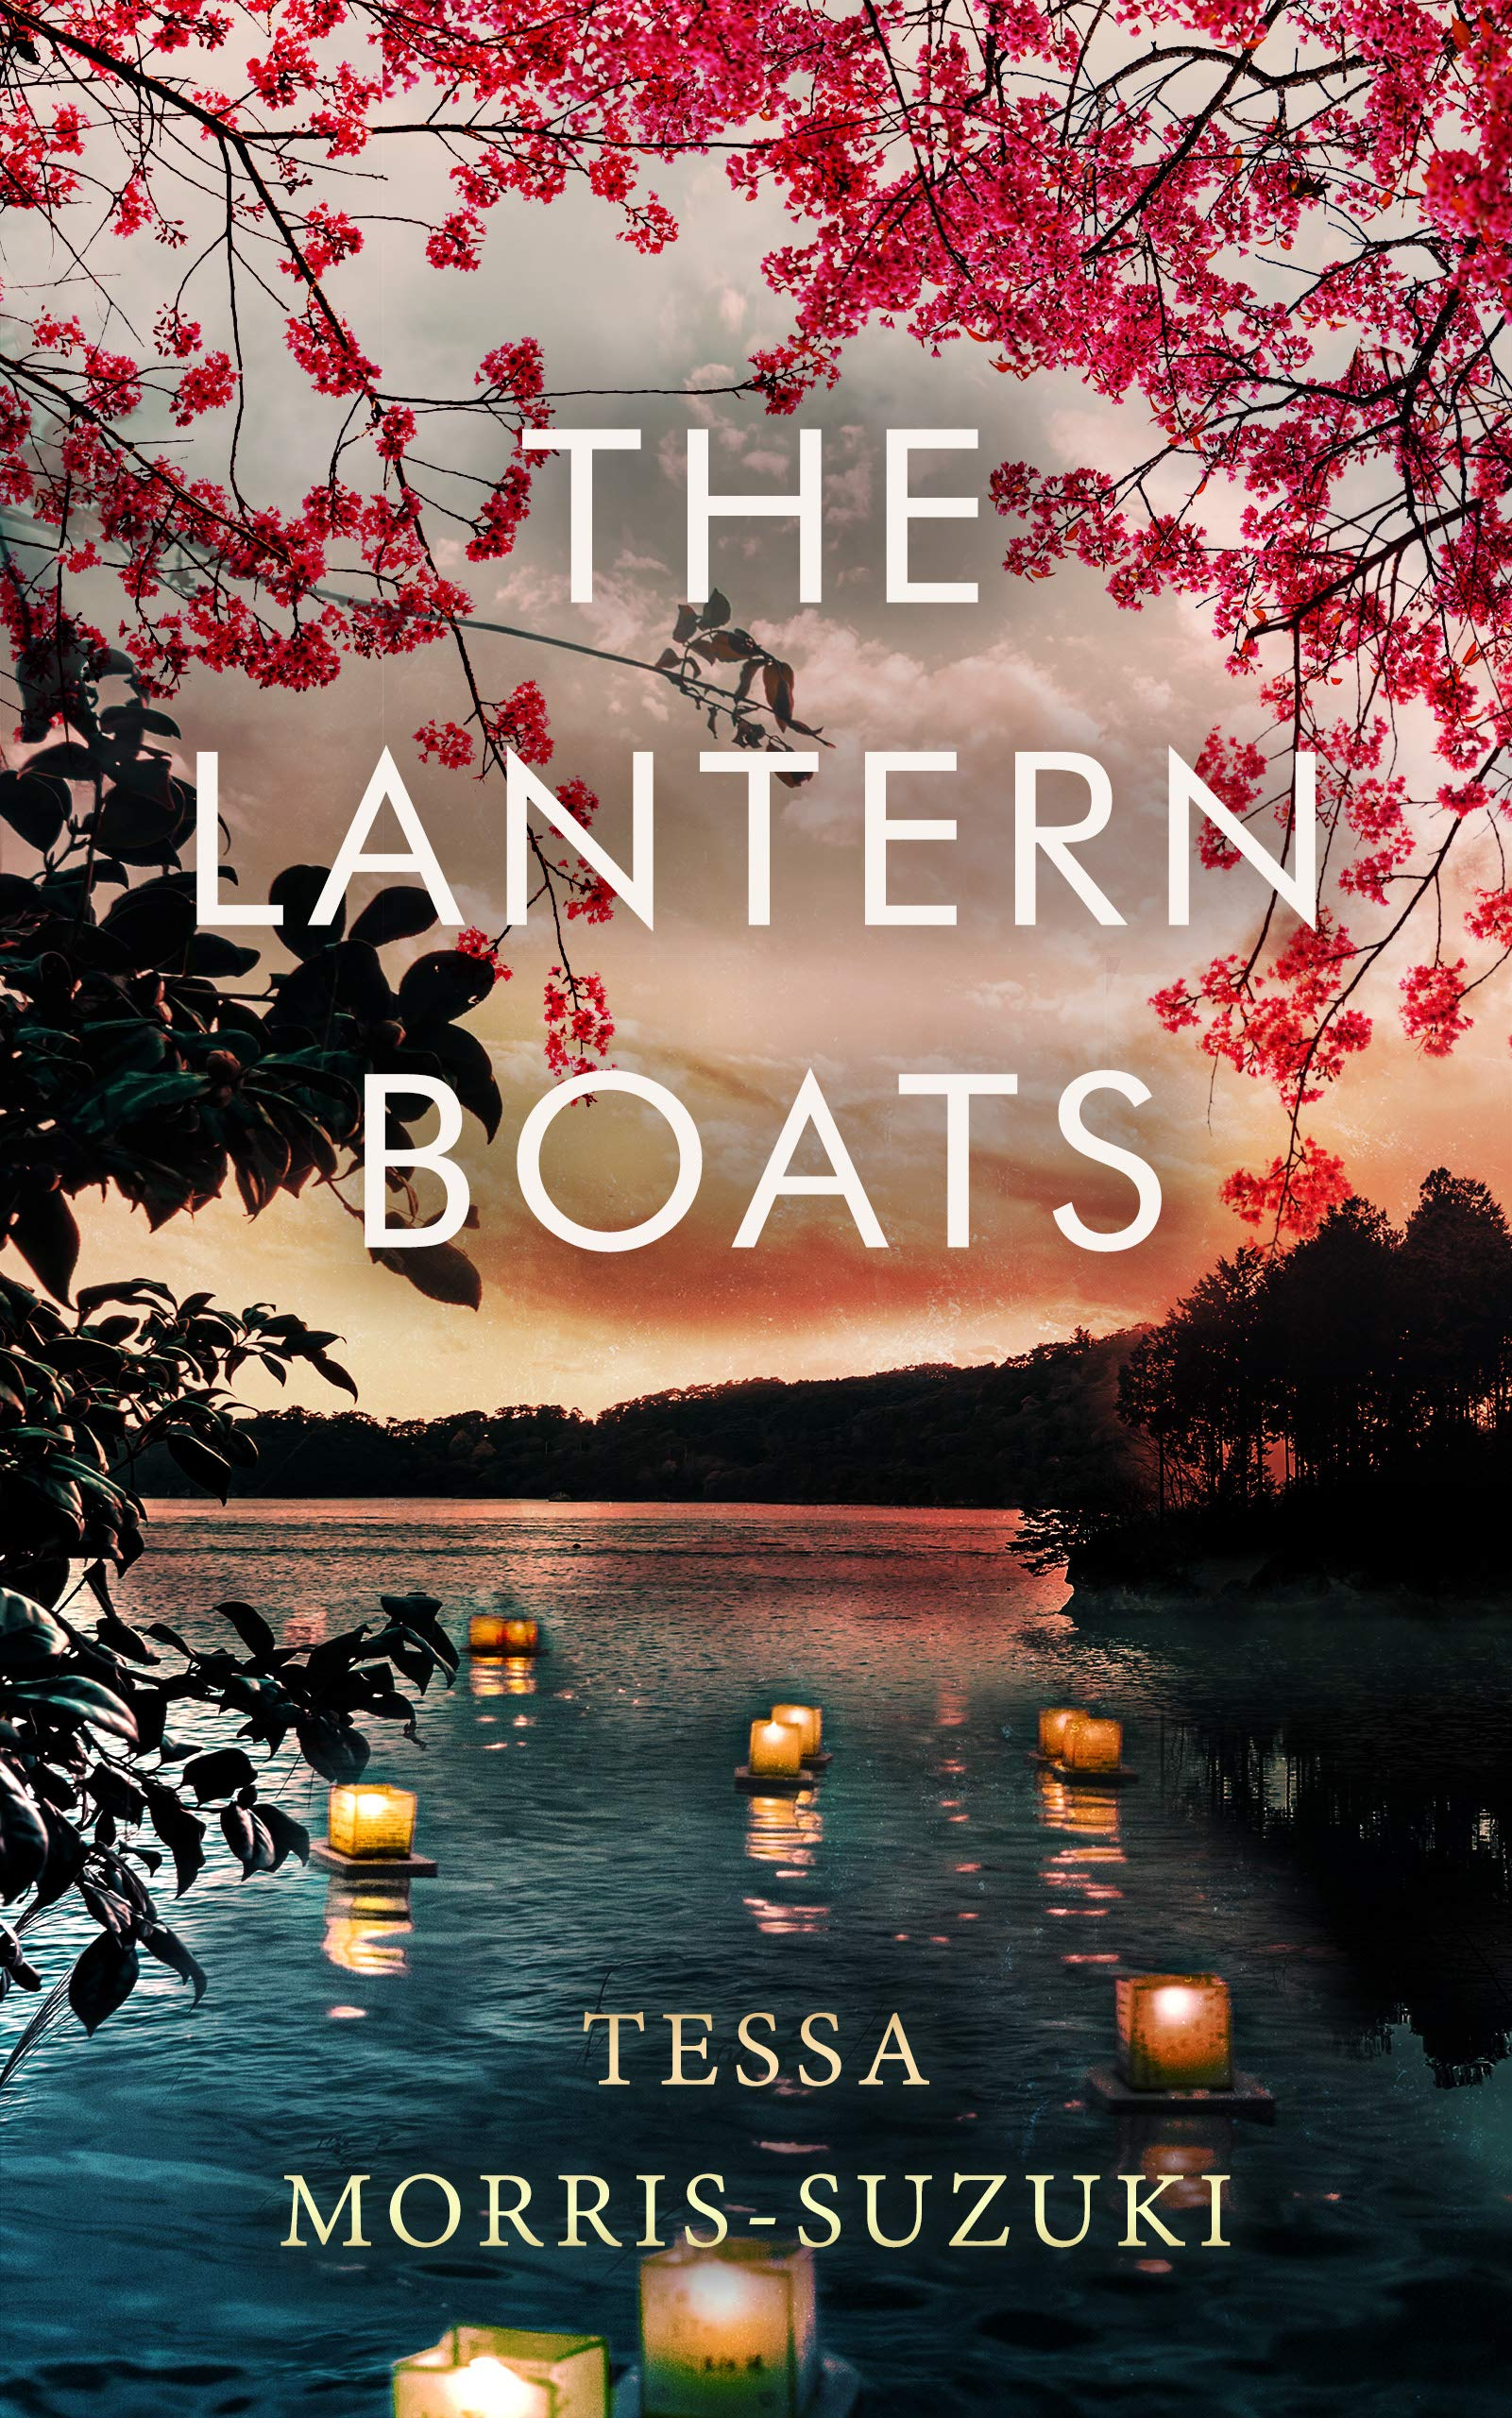 THE LANTERN BOATS an utterly gripping and heart-breaking historical novel set in post-war Japan